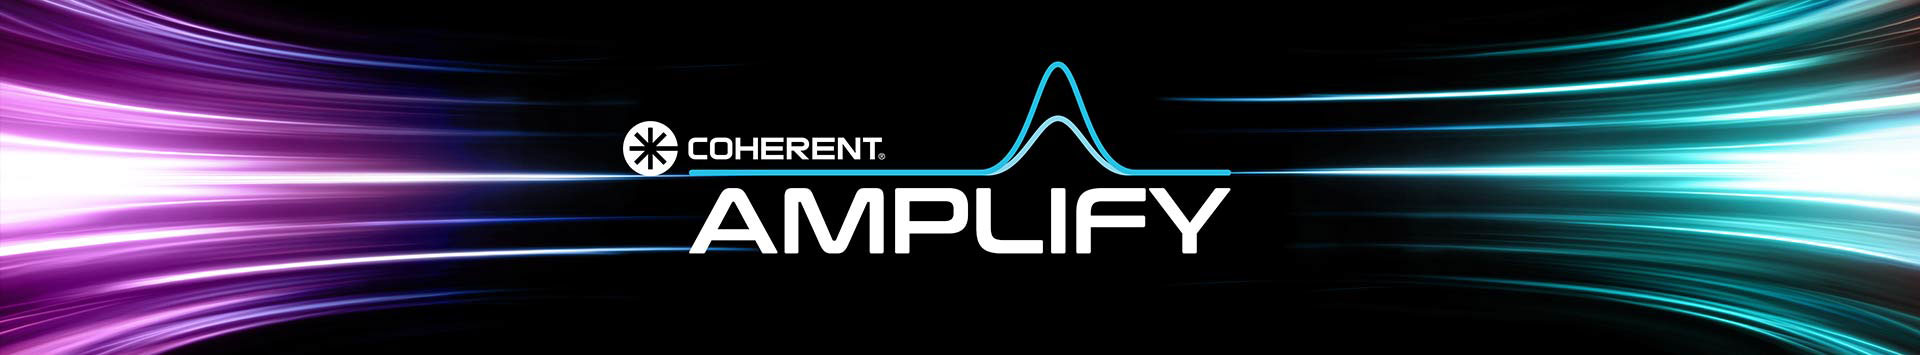 Amplify 3 - Ultrafast Registration Banner